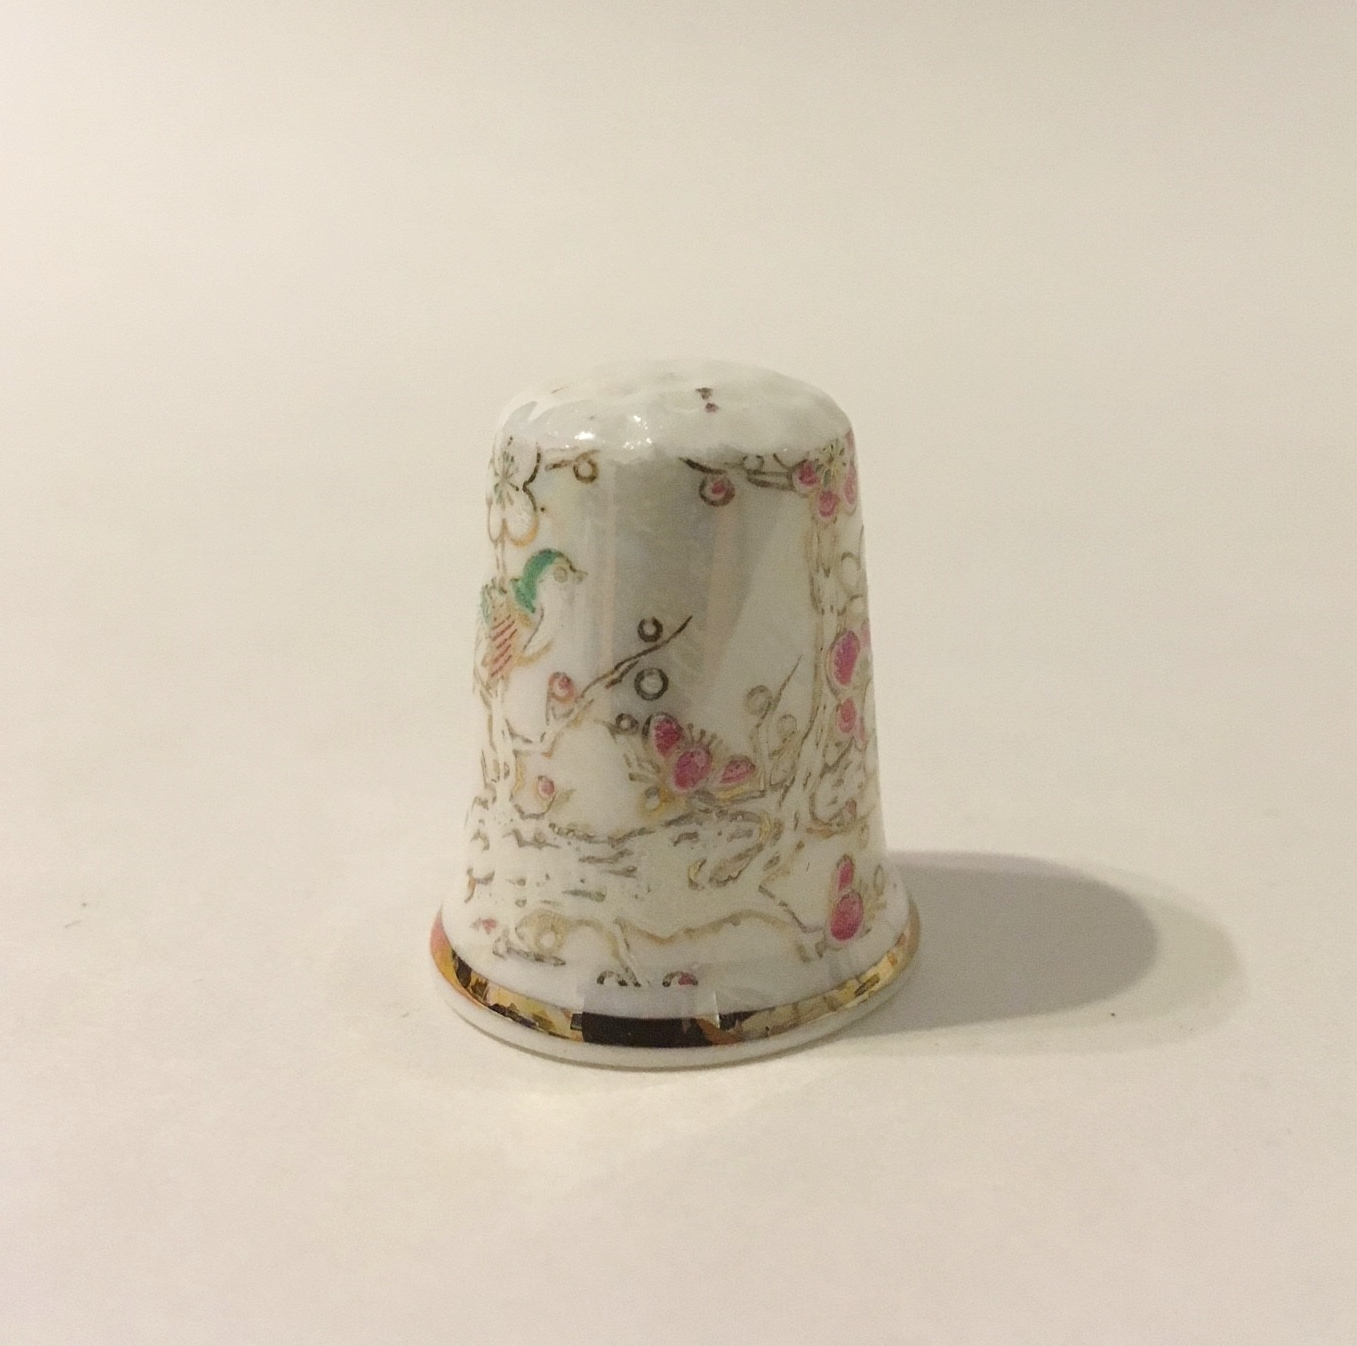 Garden Thimble Bird Floral Vintage Fine Bone China England Pink Green White Gold